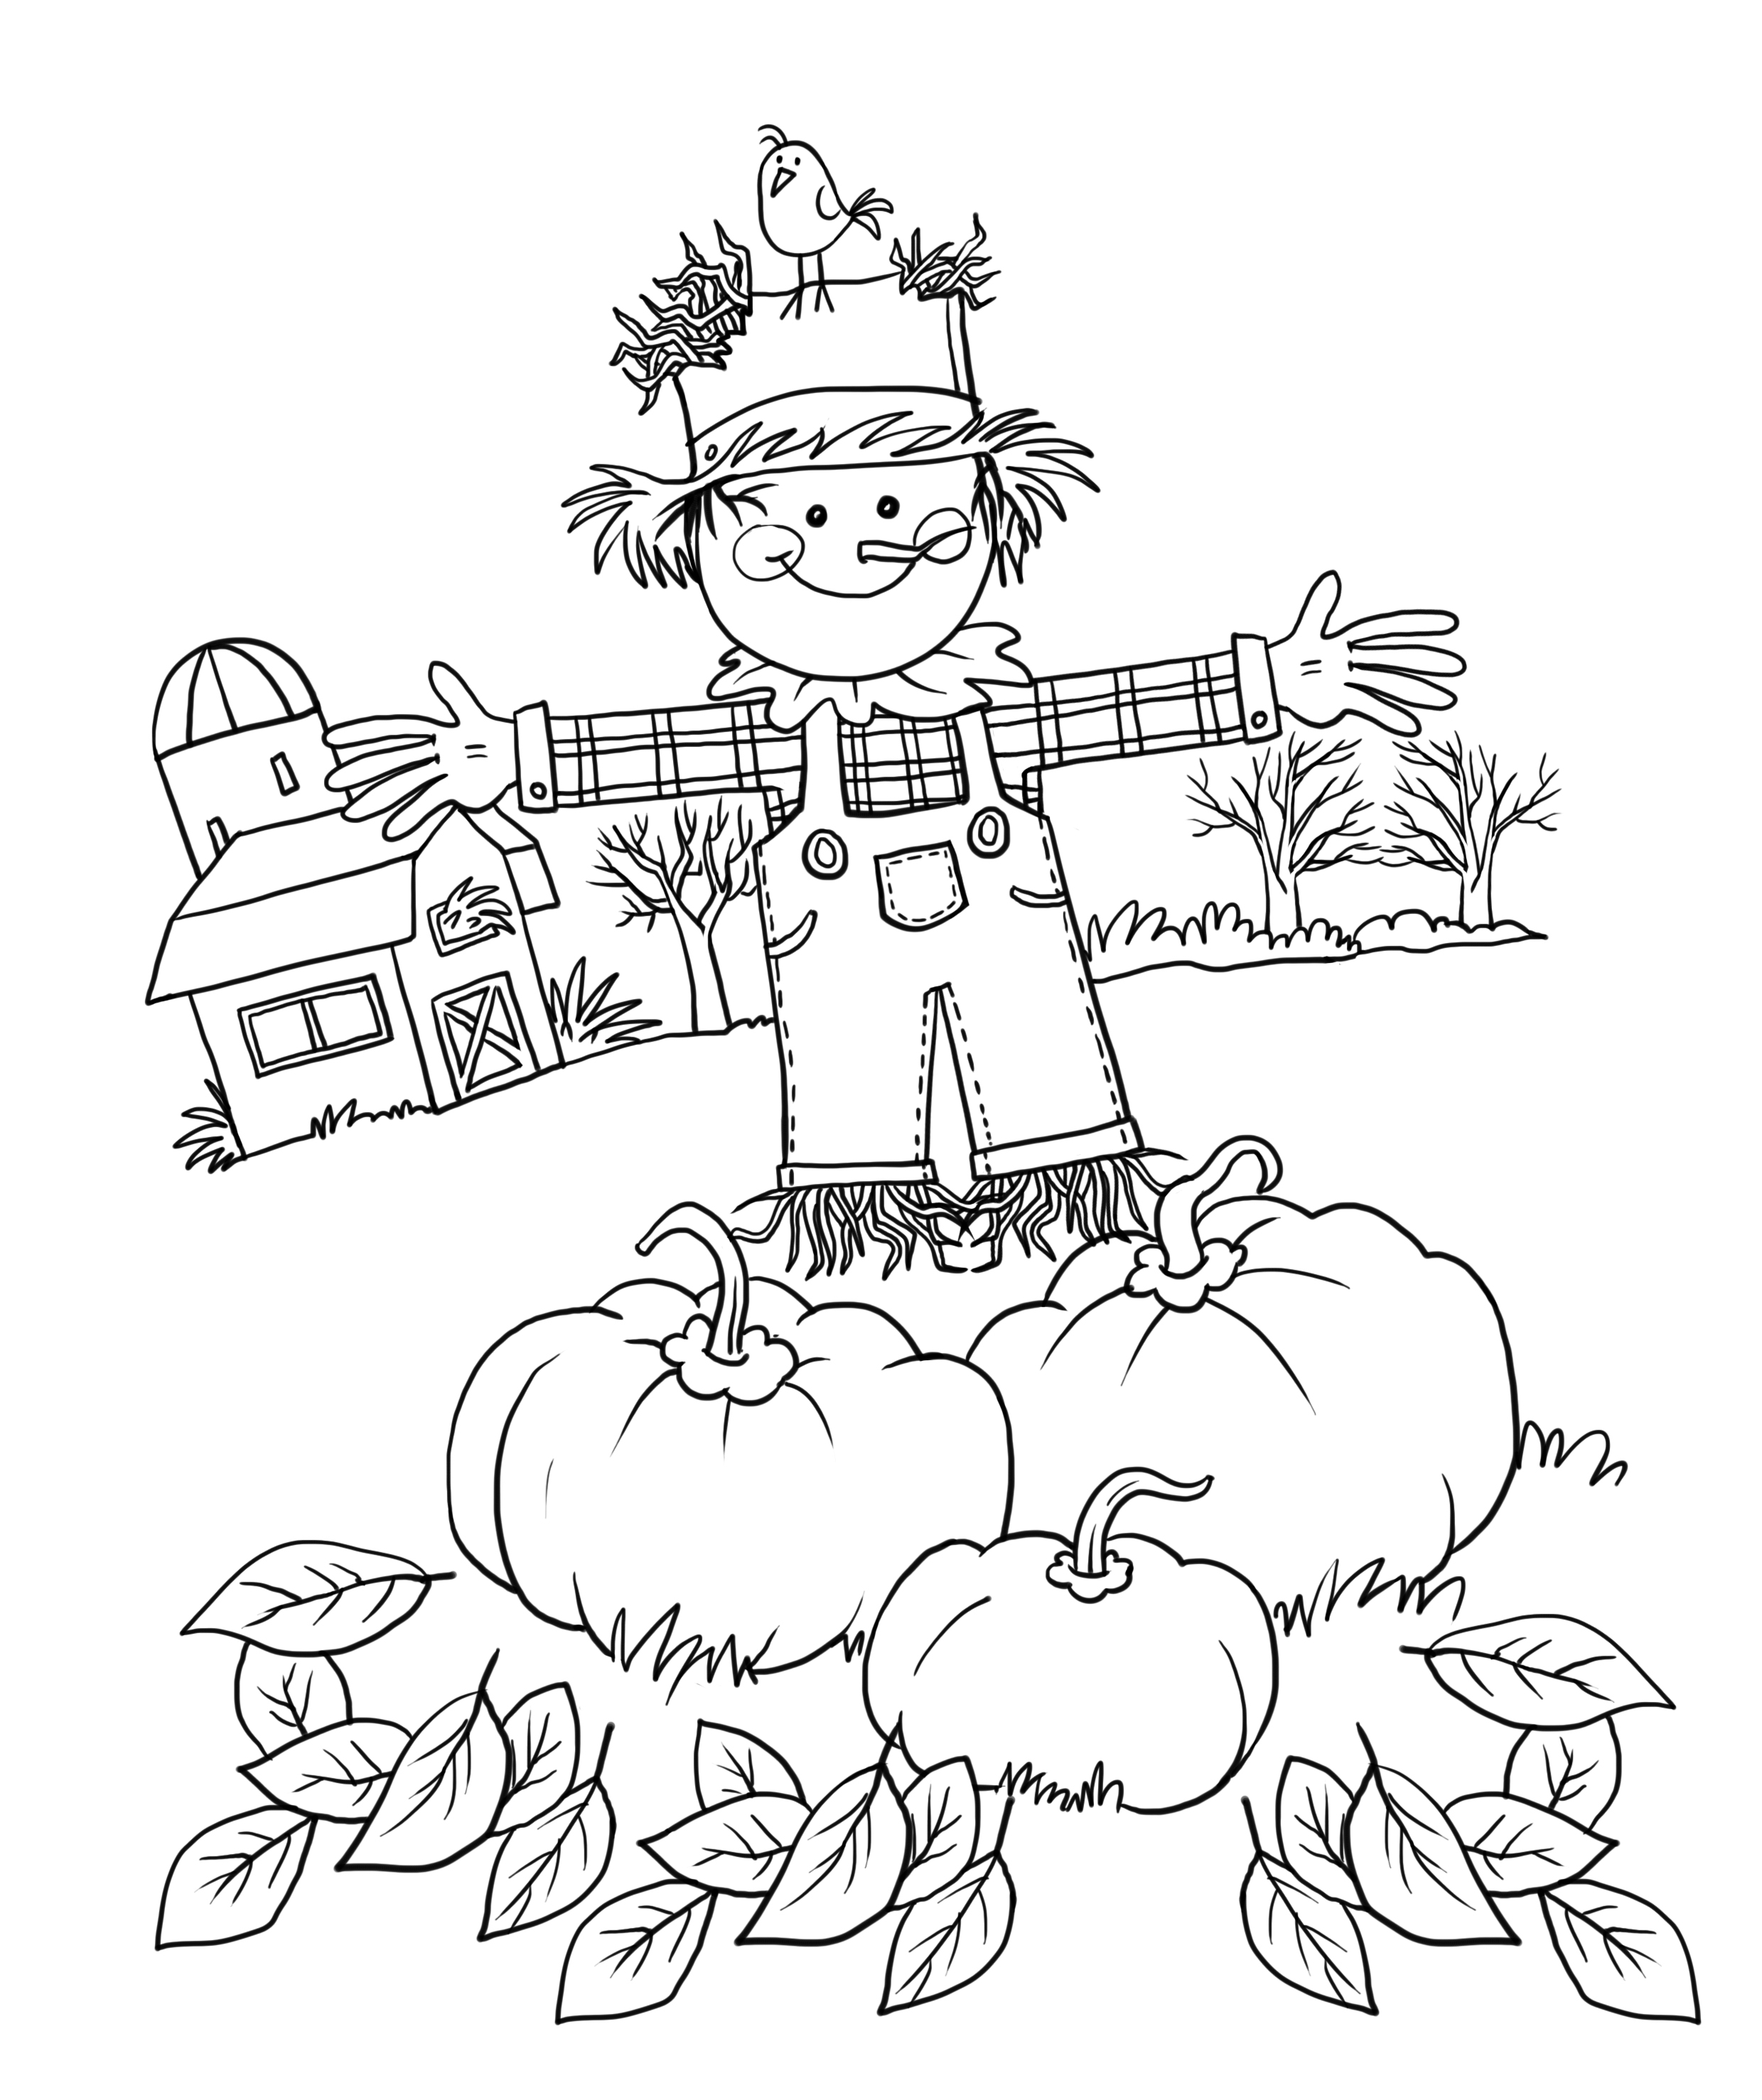 Free coloring pages for first grade - Autumn Fall Coloring Page Free Fall Coloring Pages For Adults